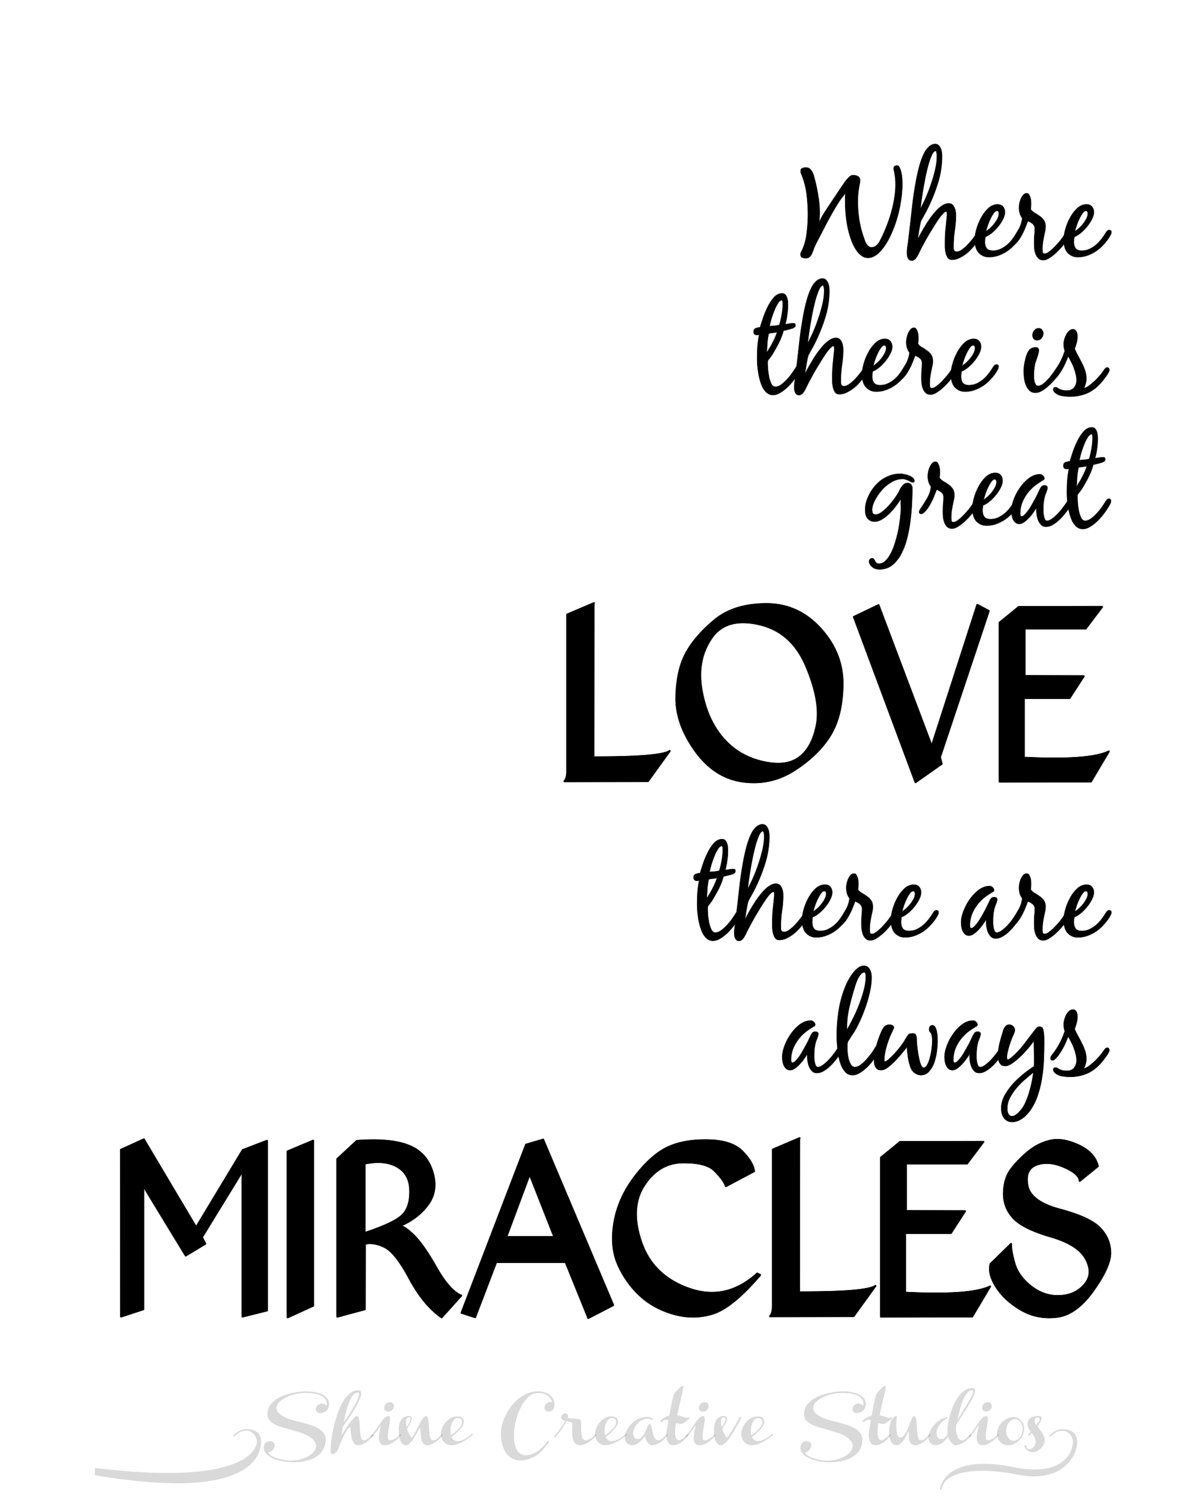 Great Love Quotes Great Love Miracles Quote Wall Artshinecreativestudios $4.50